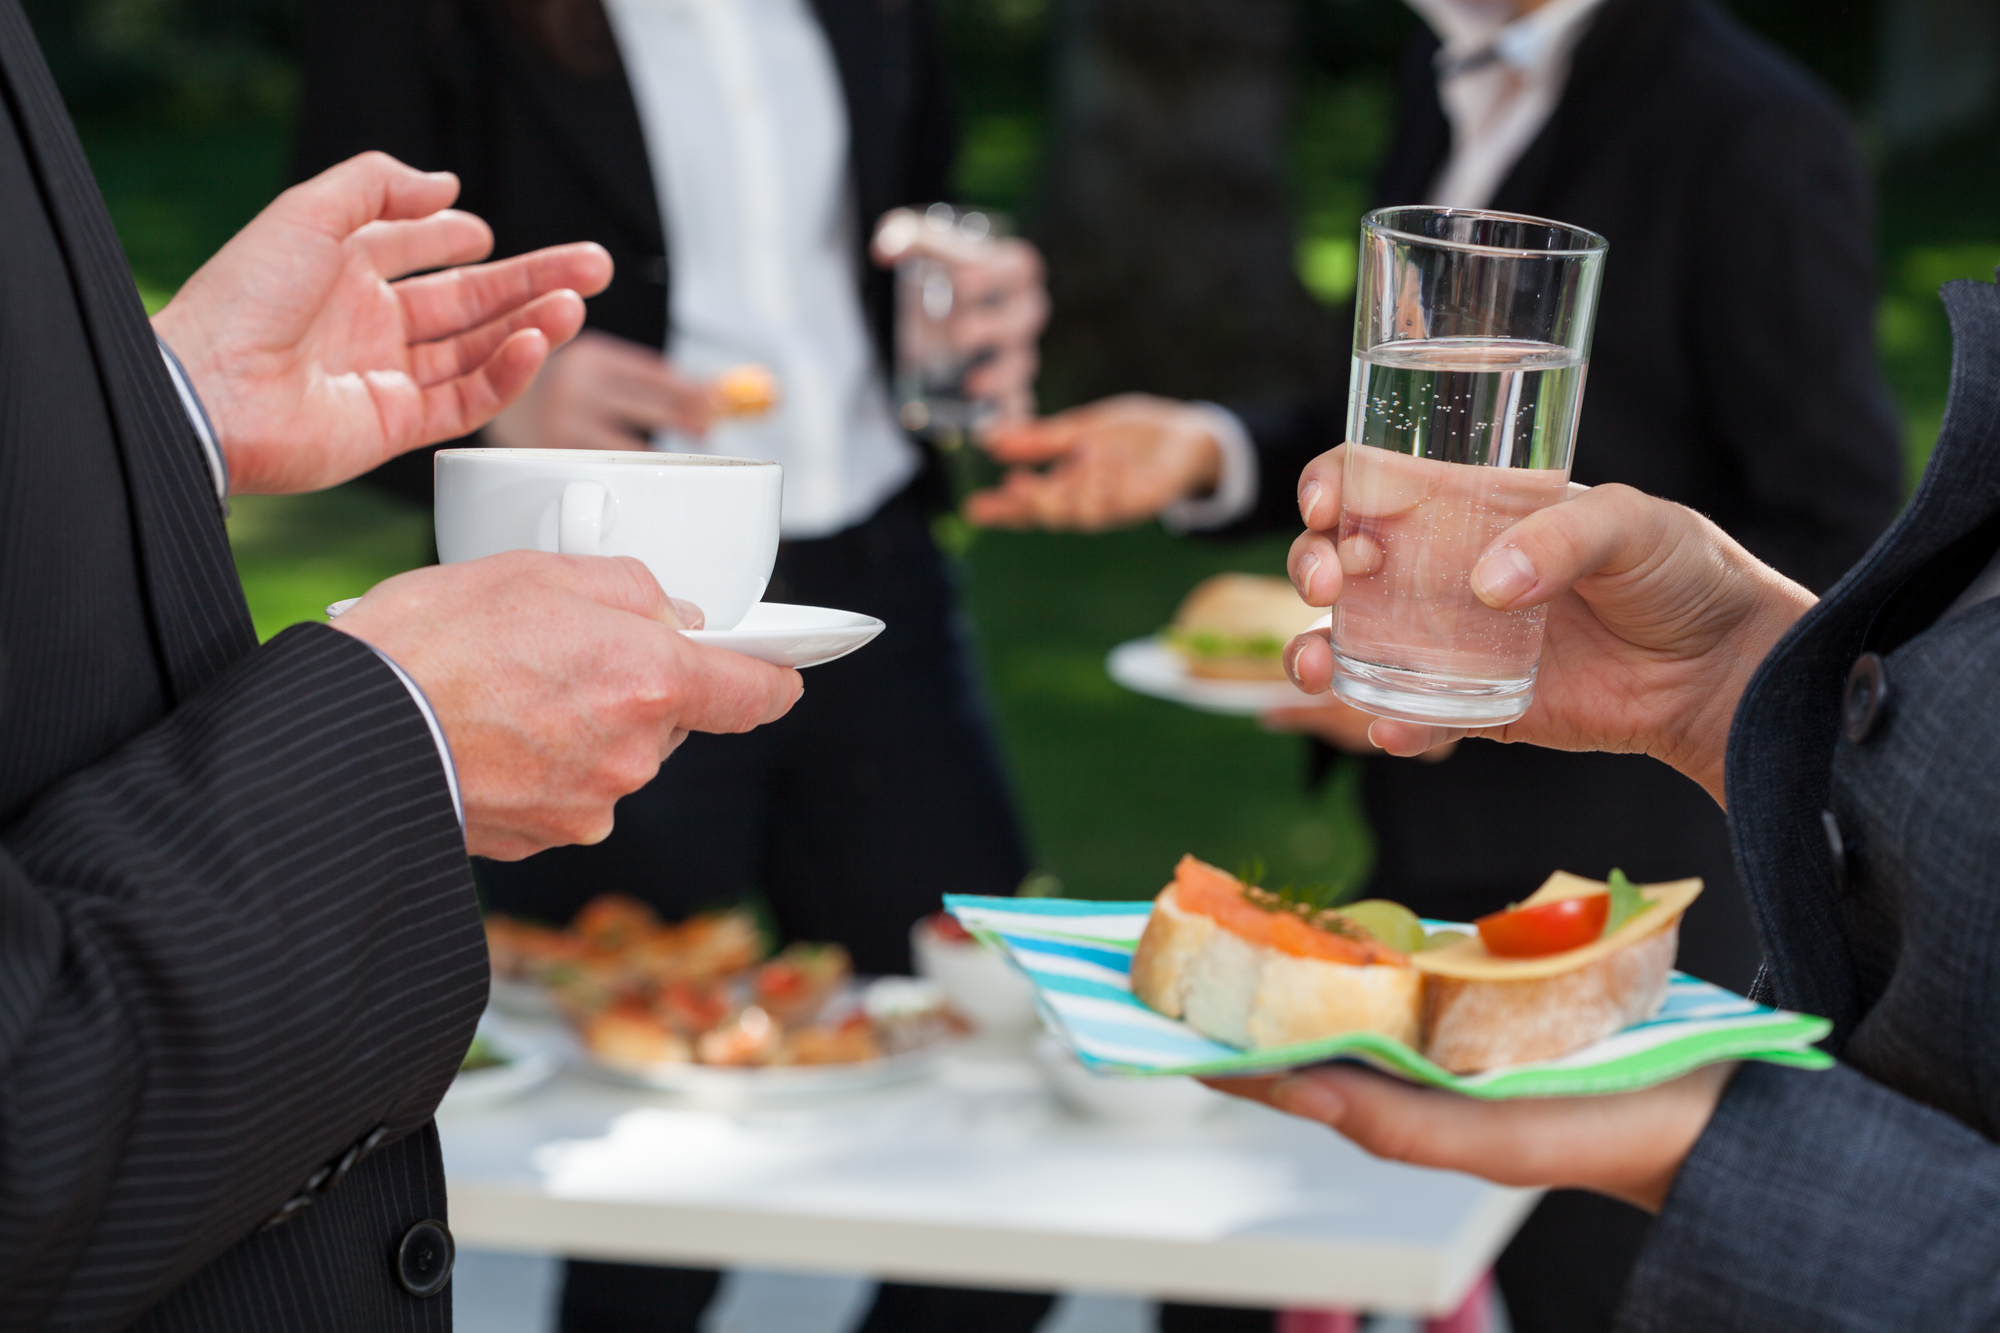 Top 5 Places To Hold An Employee Appreciation Event In San Diego, CA